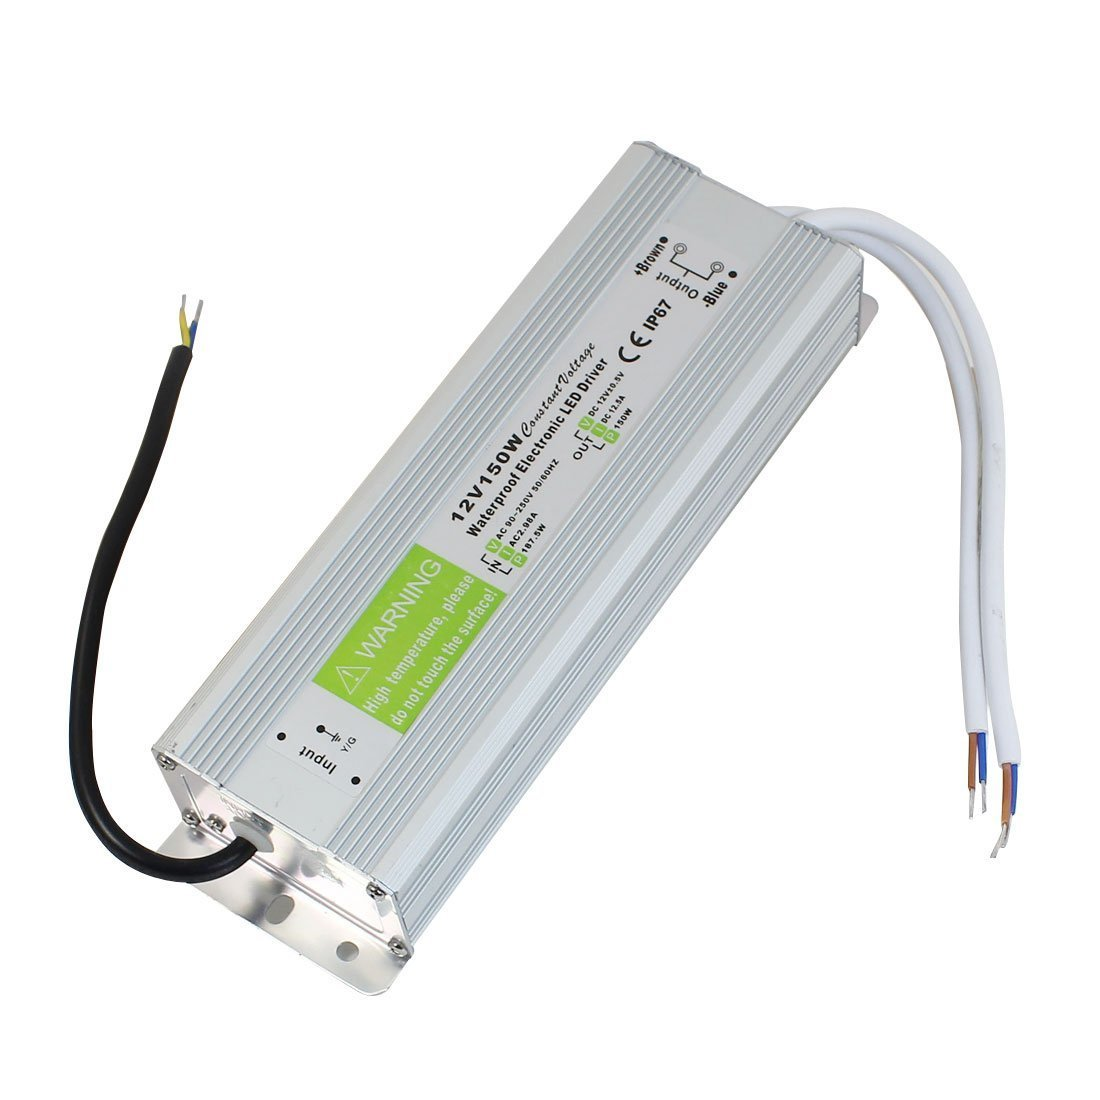 JOYLIT 12V DC Switching Power Supply Transformer IP67 Waterproof 150W 12.5A Low Voltage for LED Strip Lights